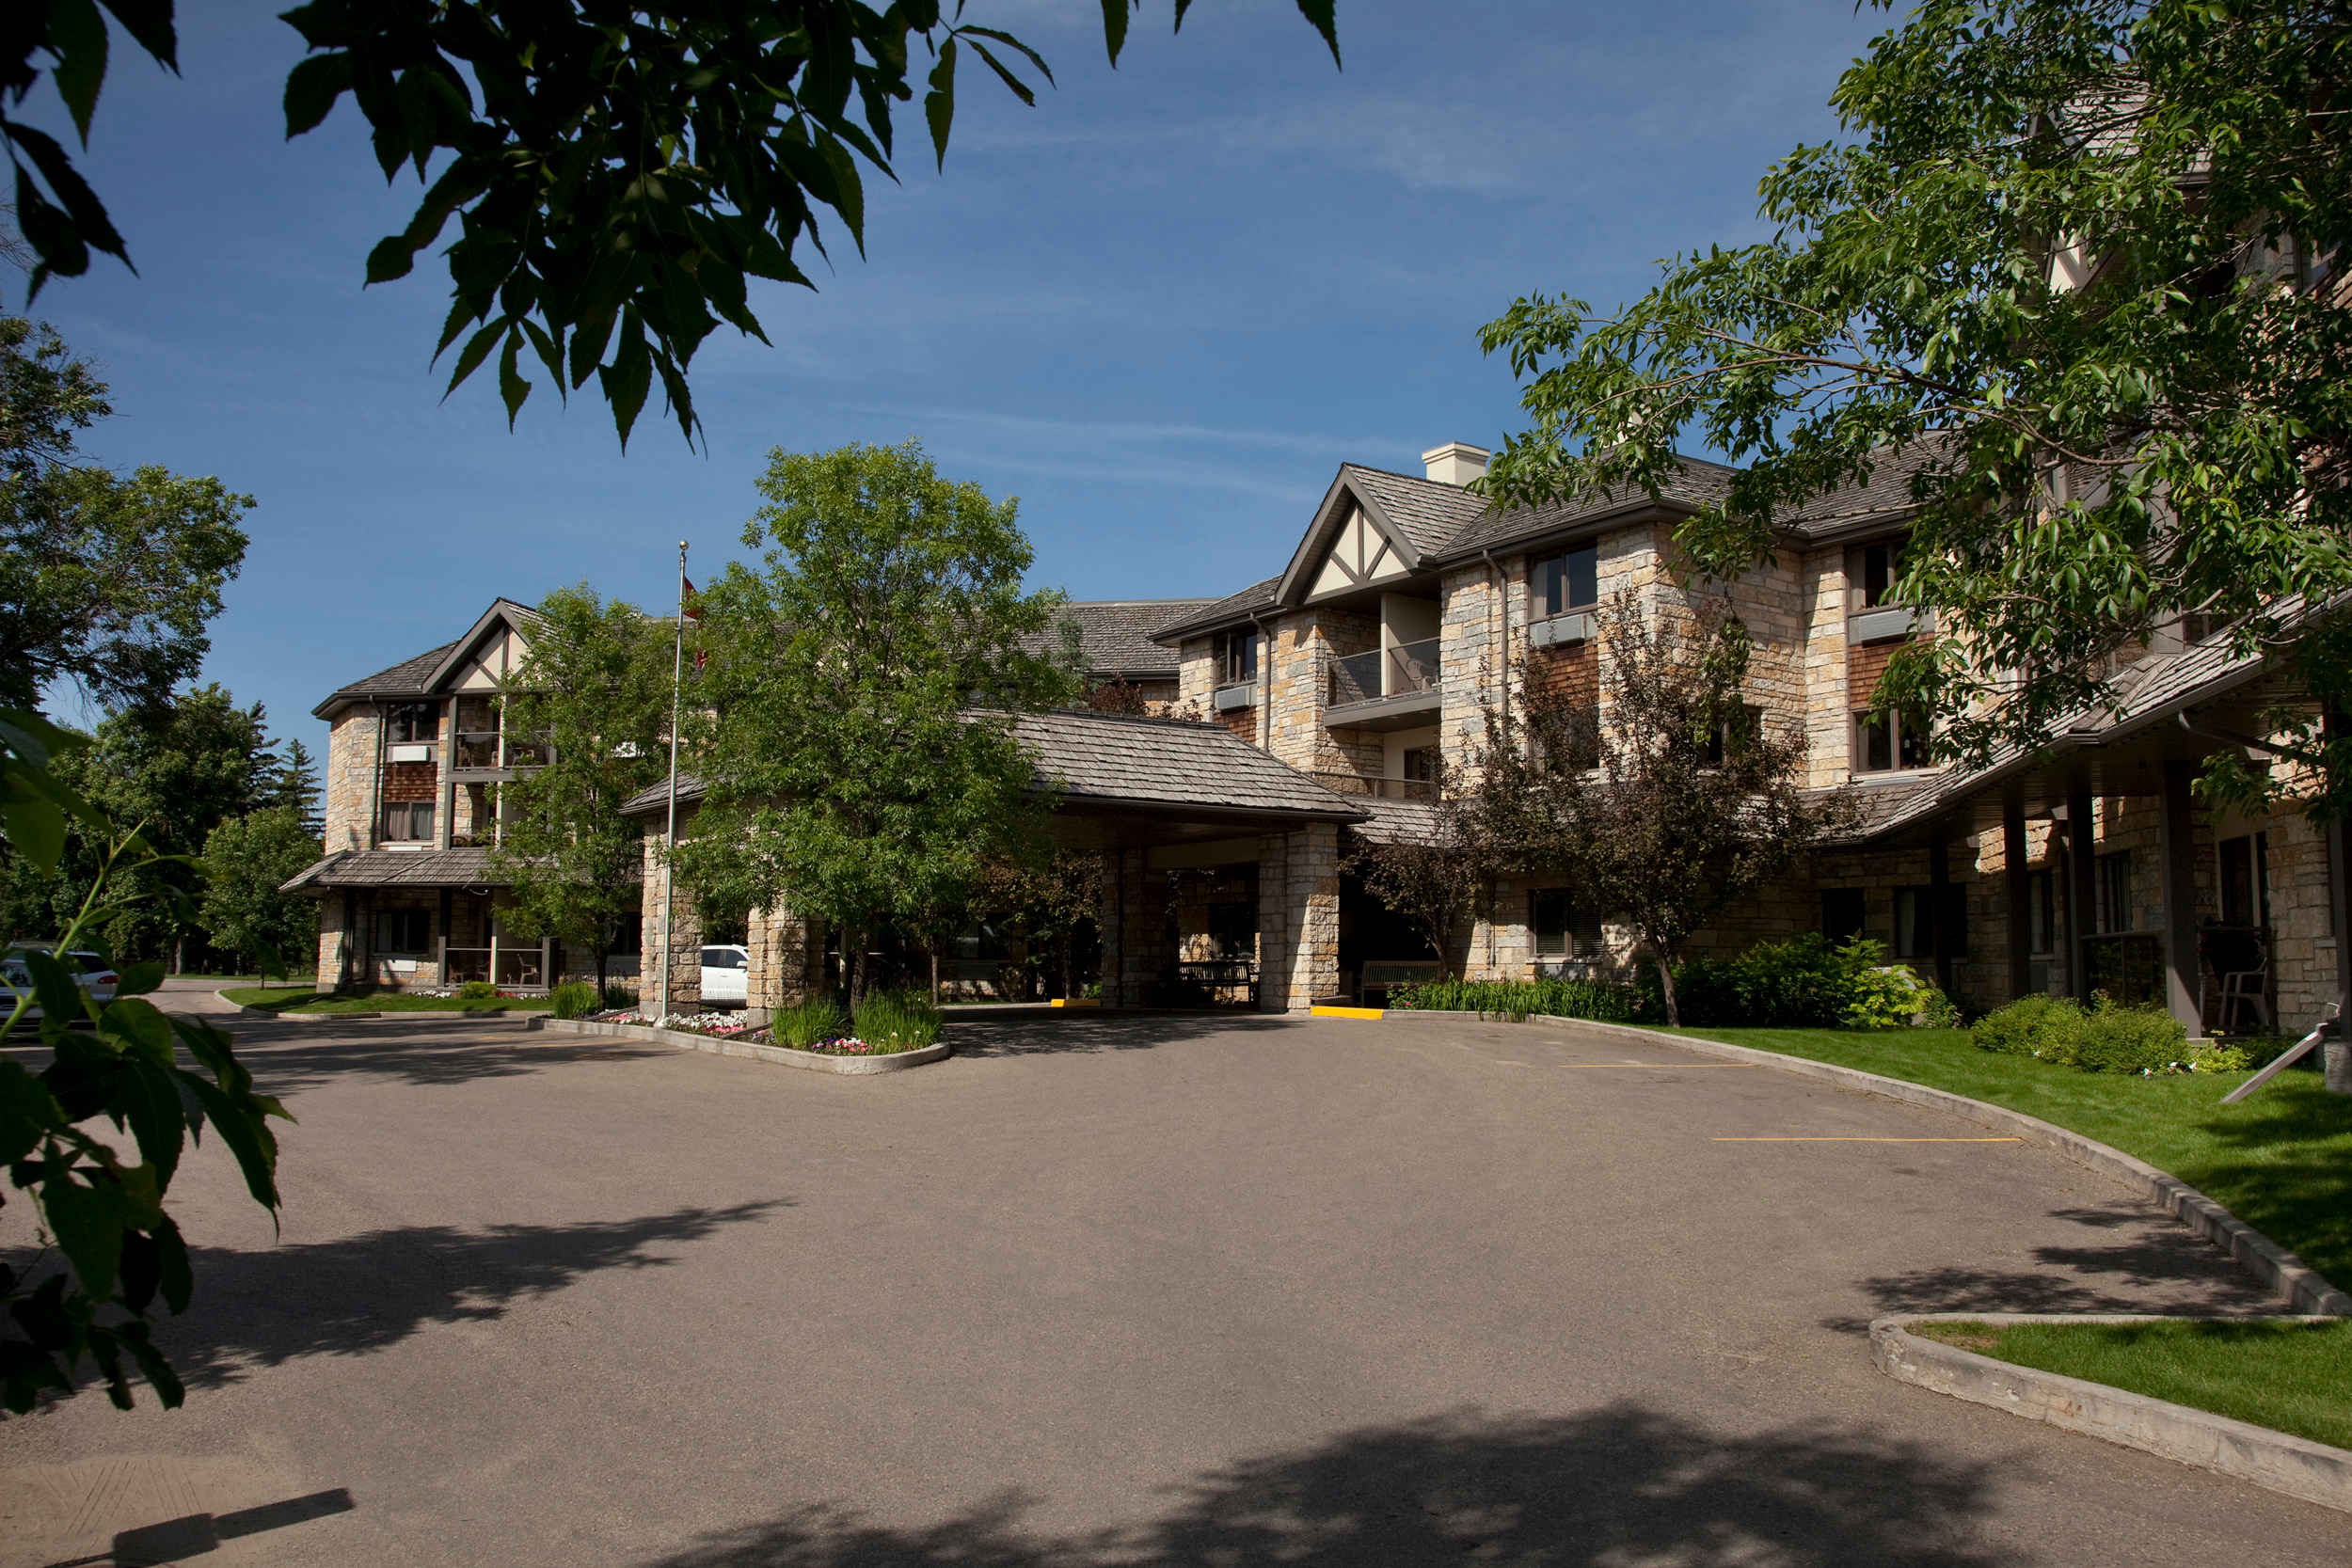 Marian Chateau in Regina